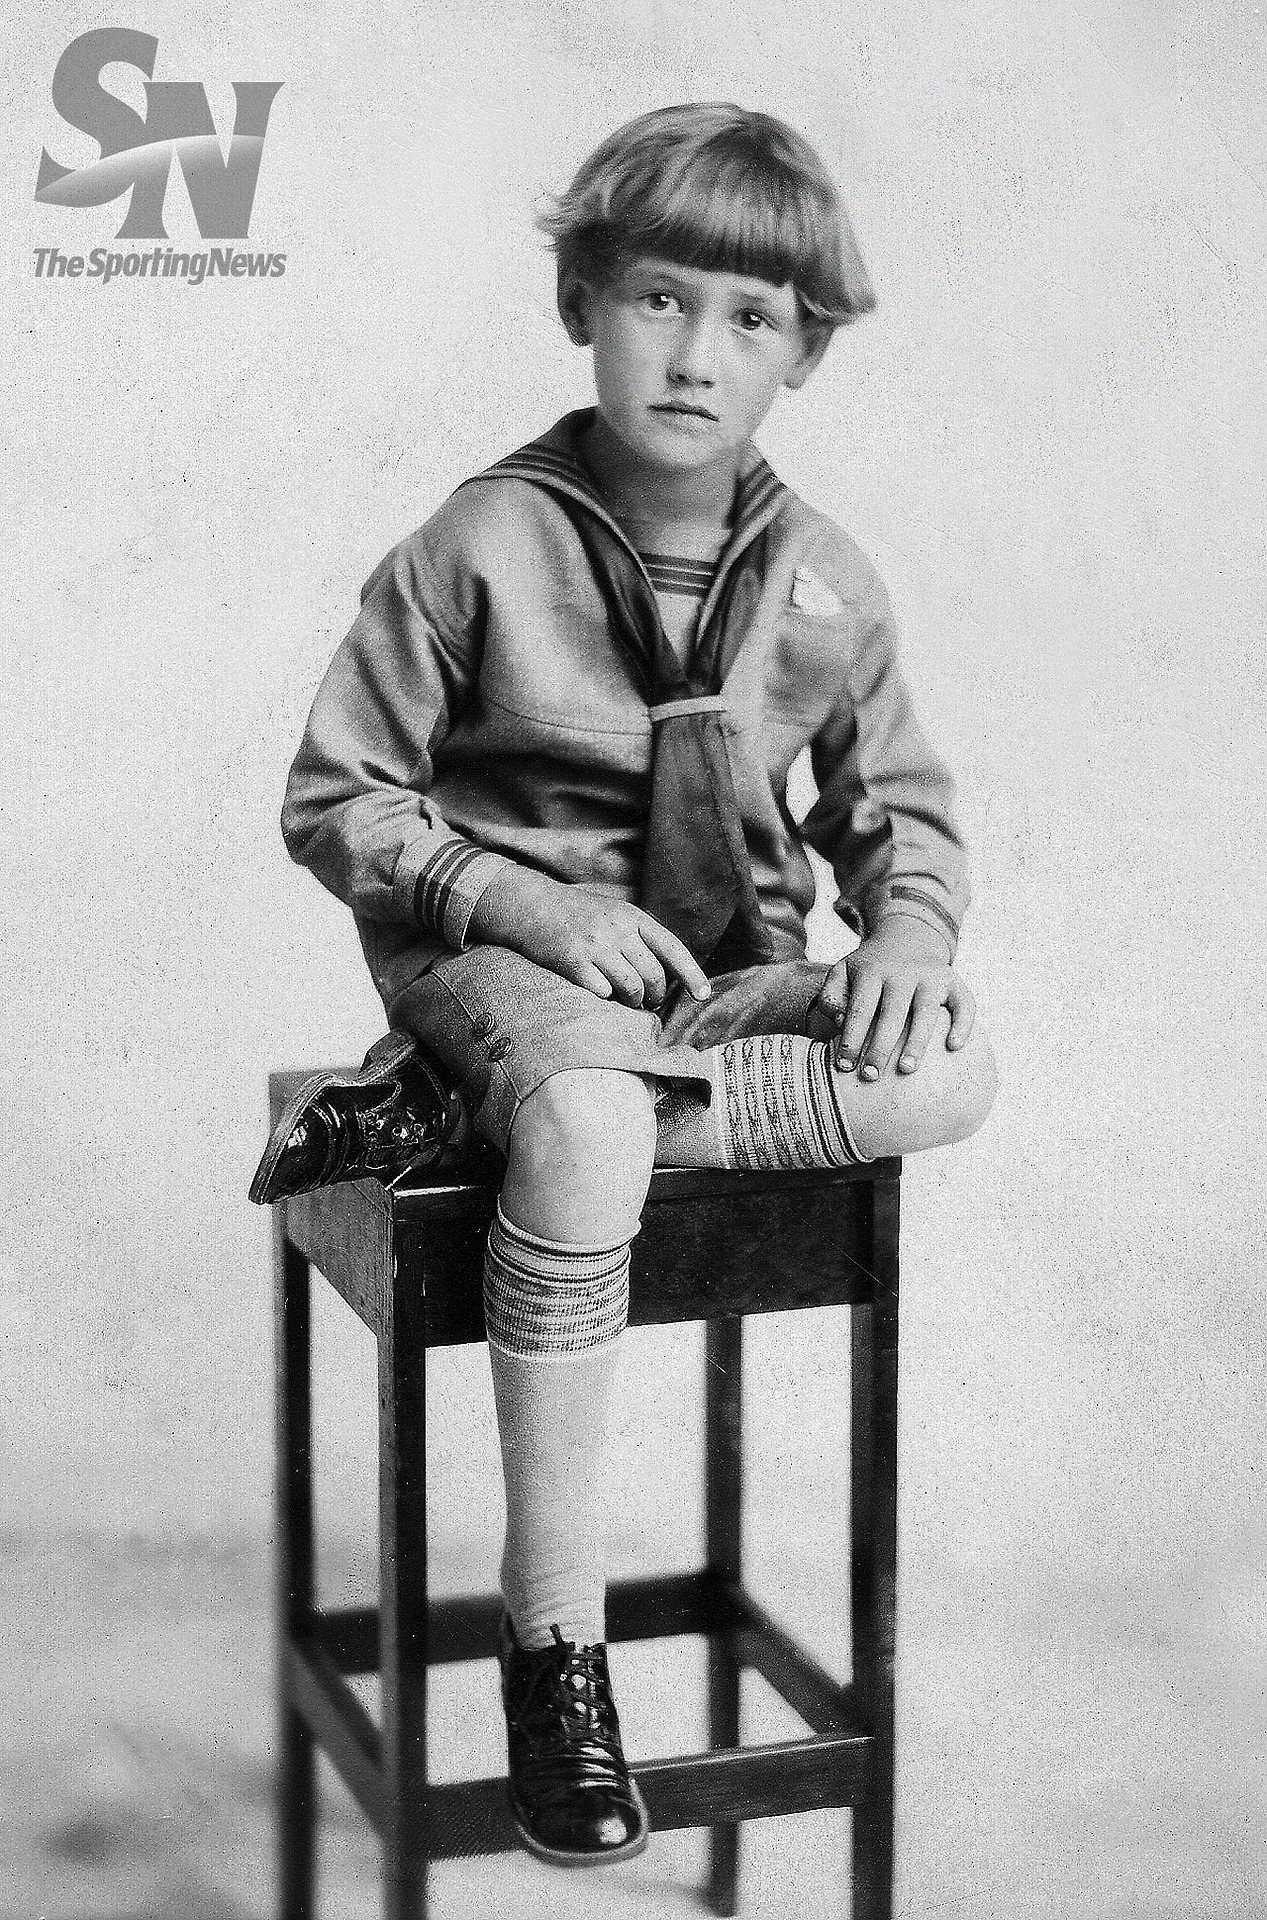 WILLIAMS AT AGE 6